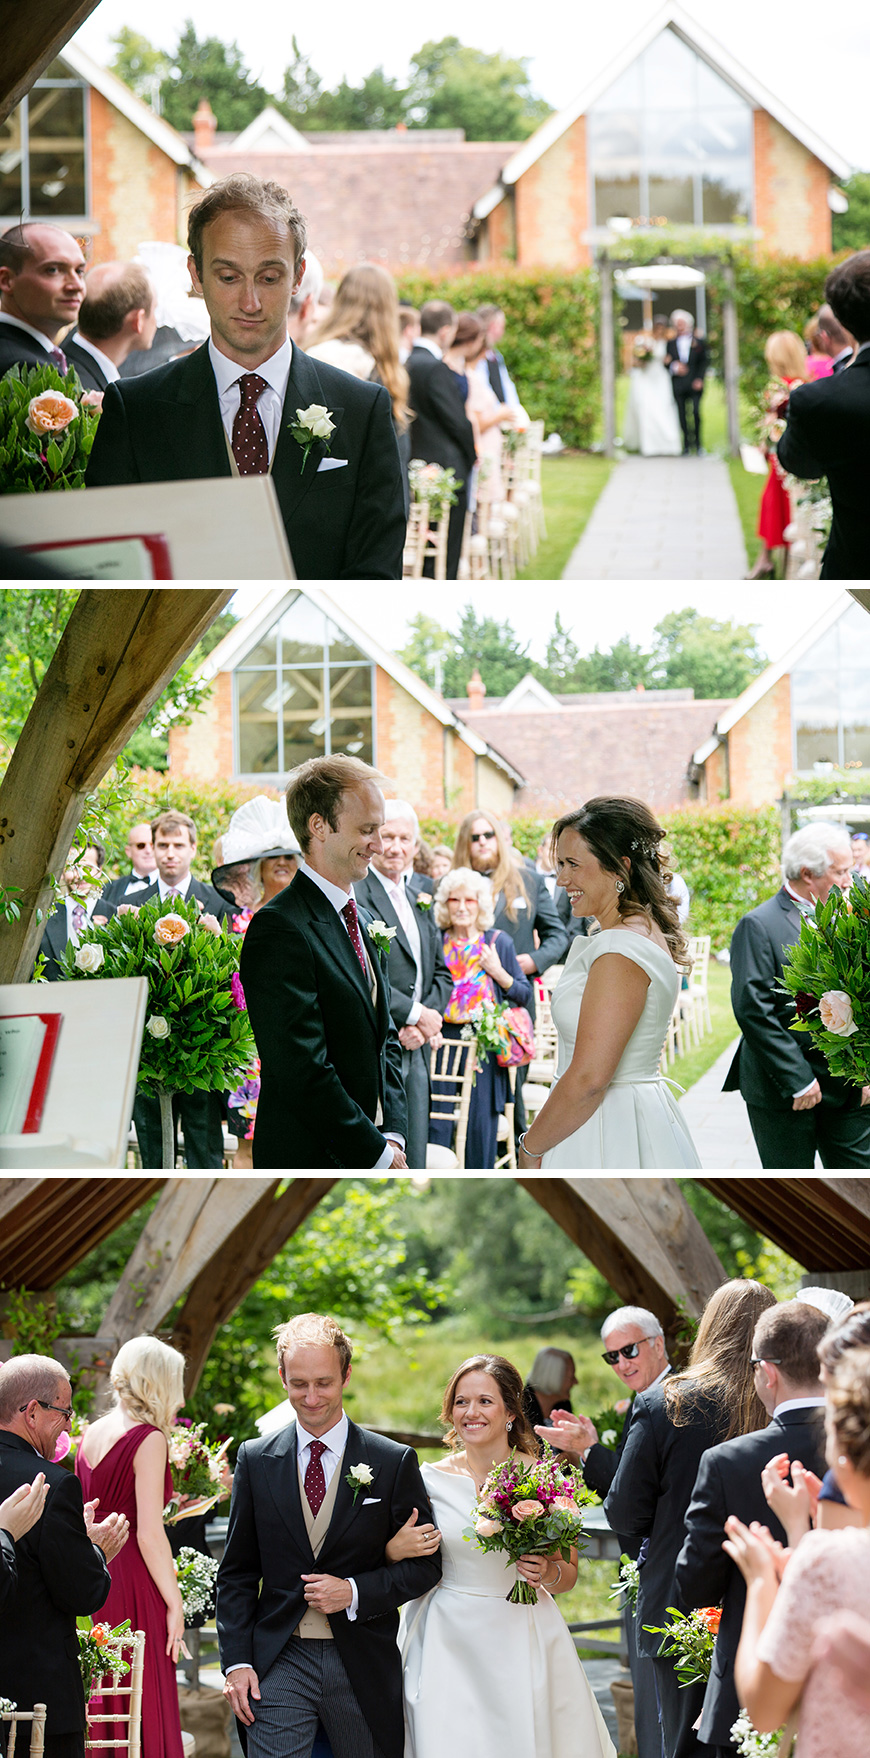 Real Wedding - Nava and Nicholas's Outdoor Summer Wedding at Millbridge Court | CHWV